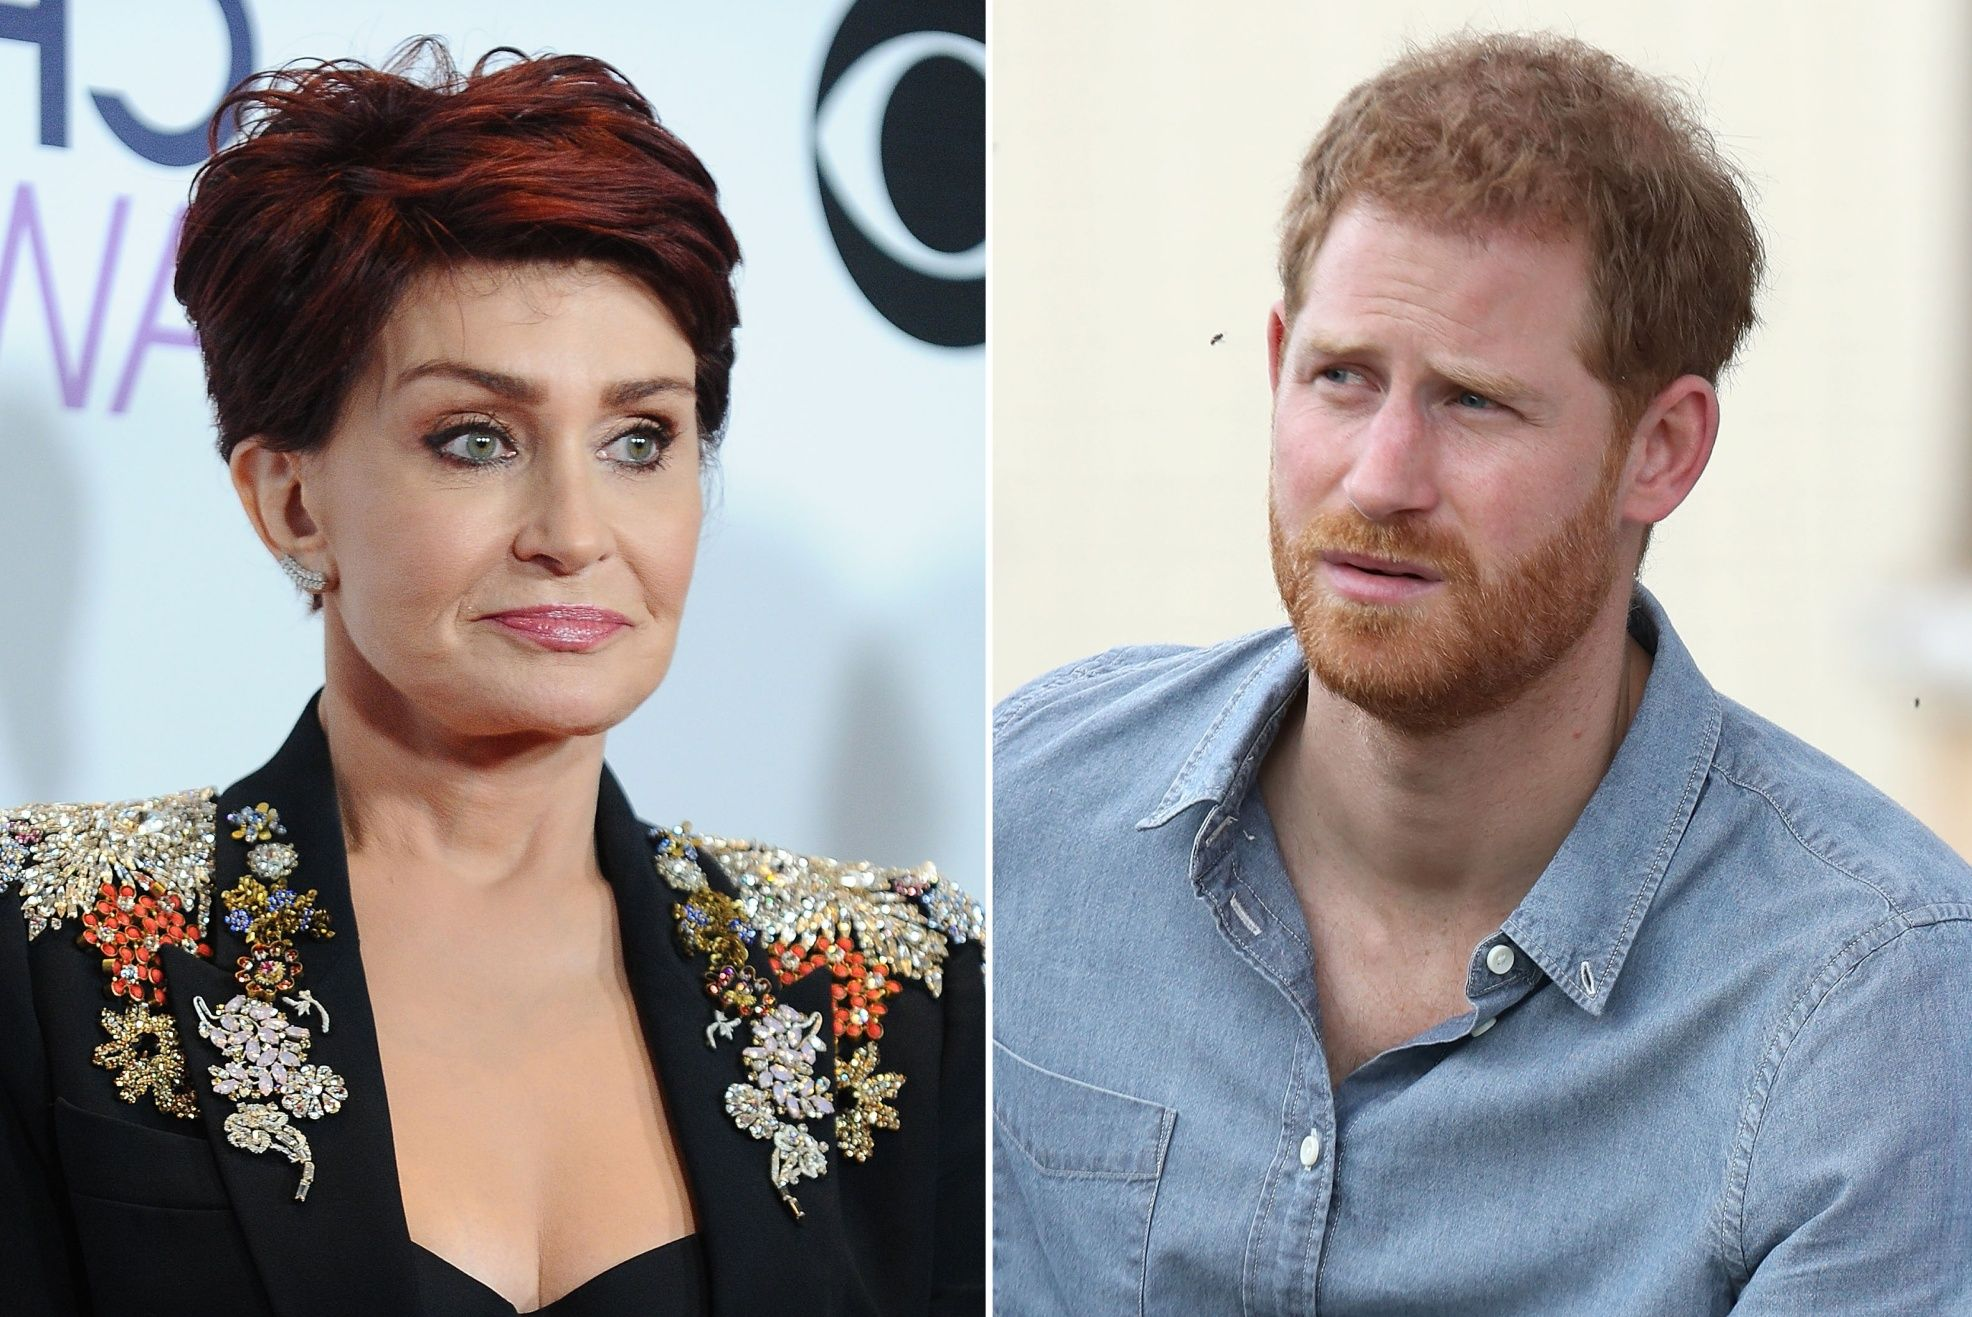 sharon-osbourne-says-prince-harry-is-the-poster-boy-for-white-privilege-after-her-racist-scandal-and-firing